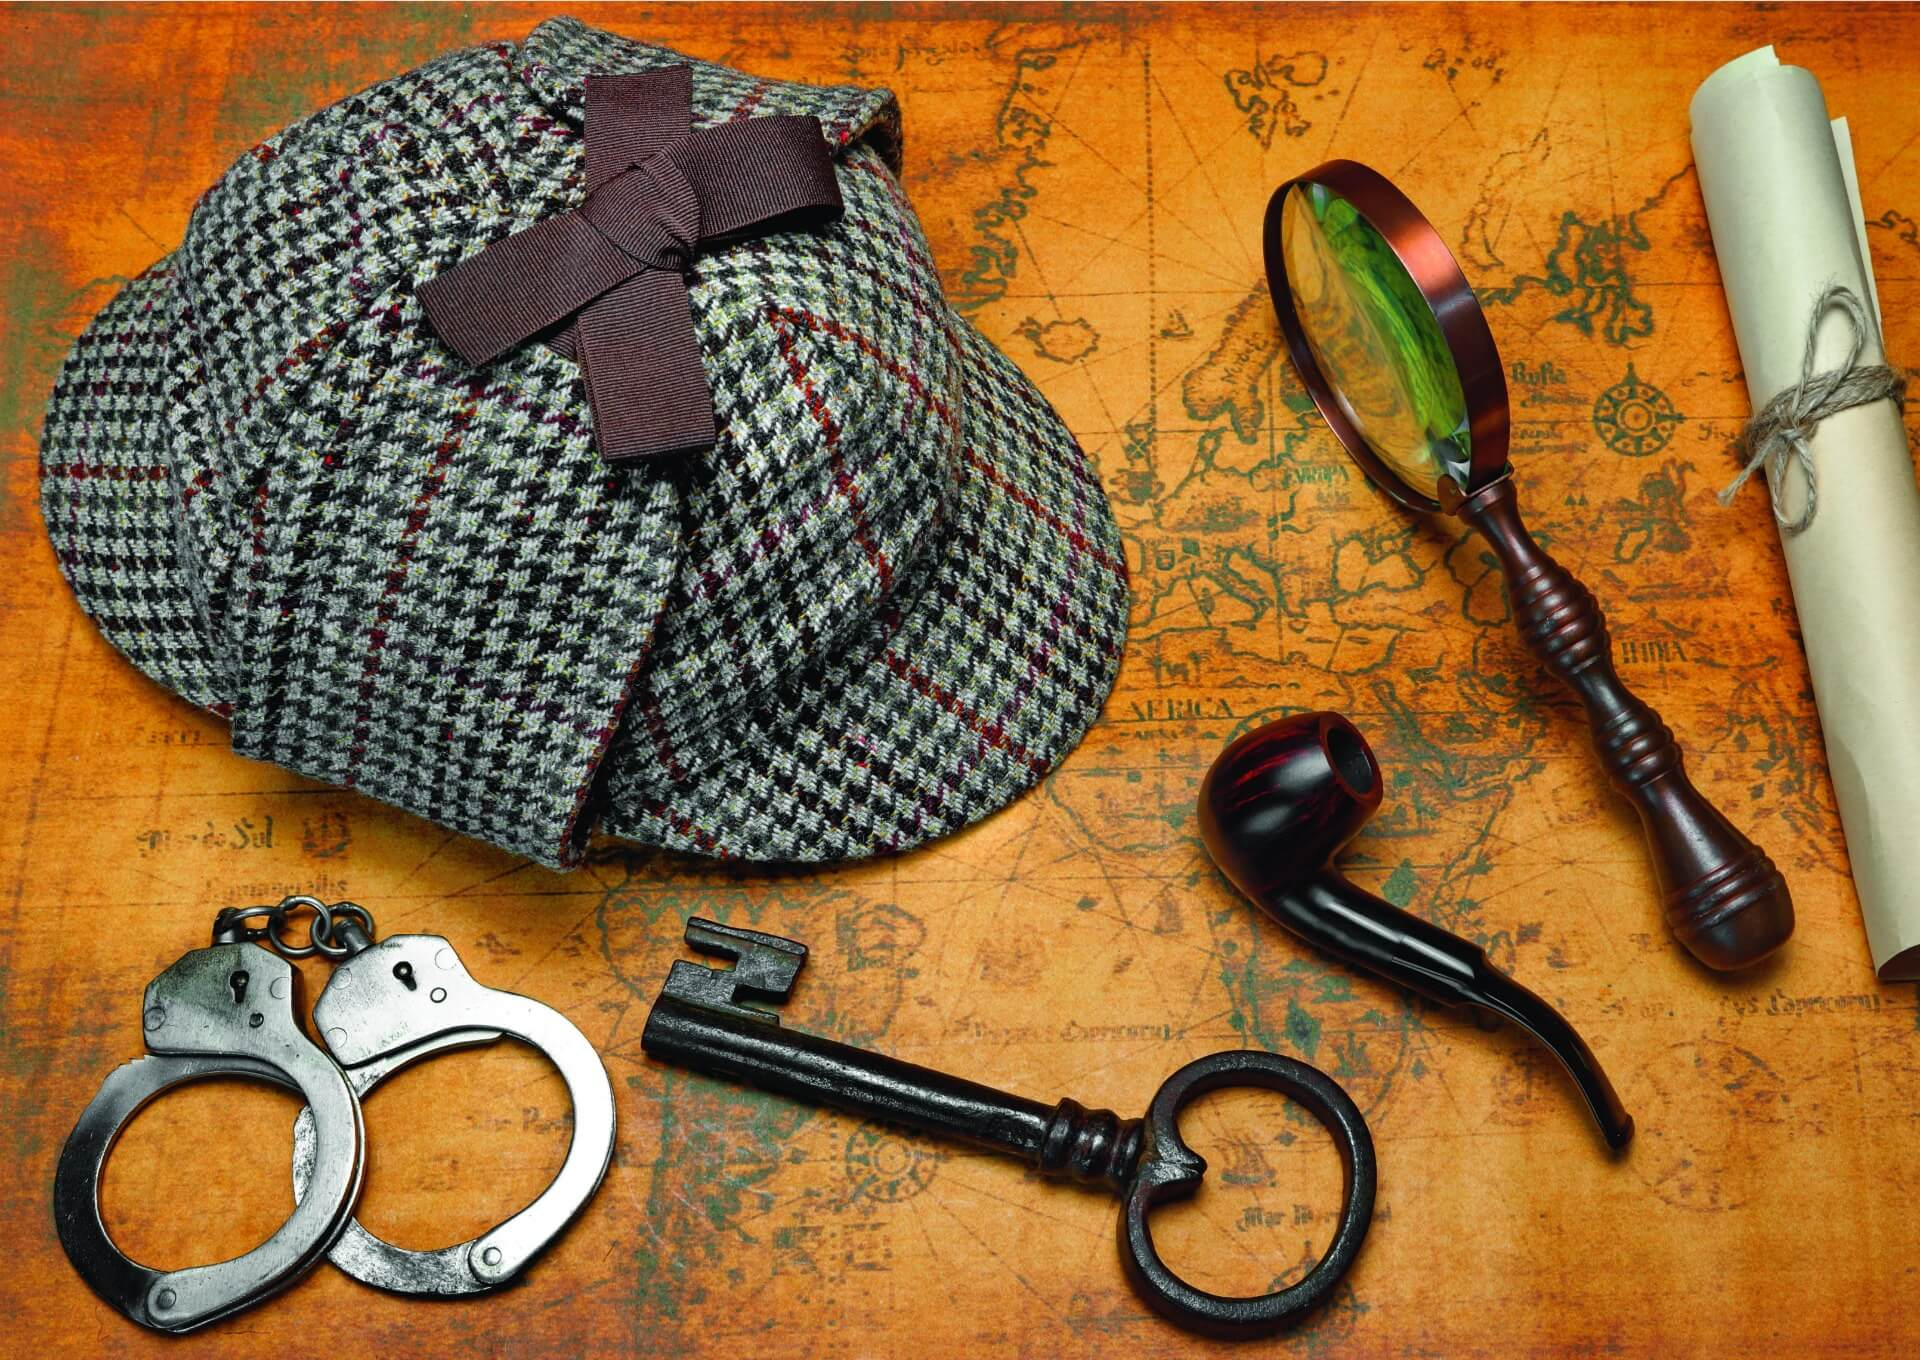 Sherlock Holmes Interactive Experience